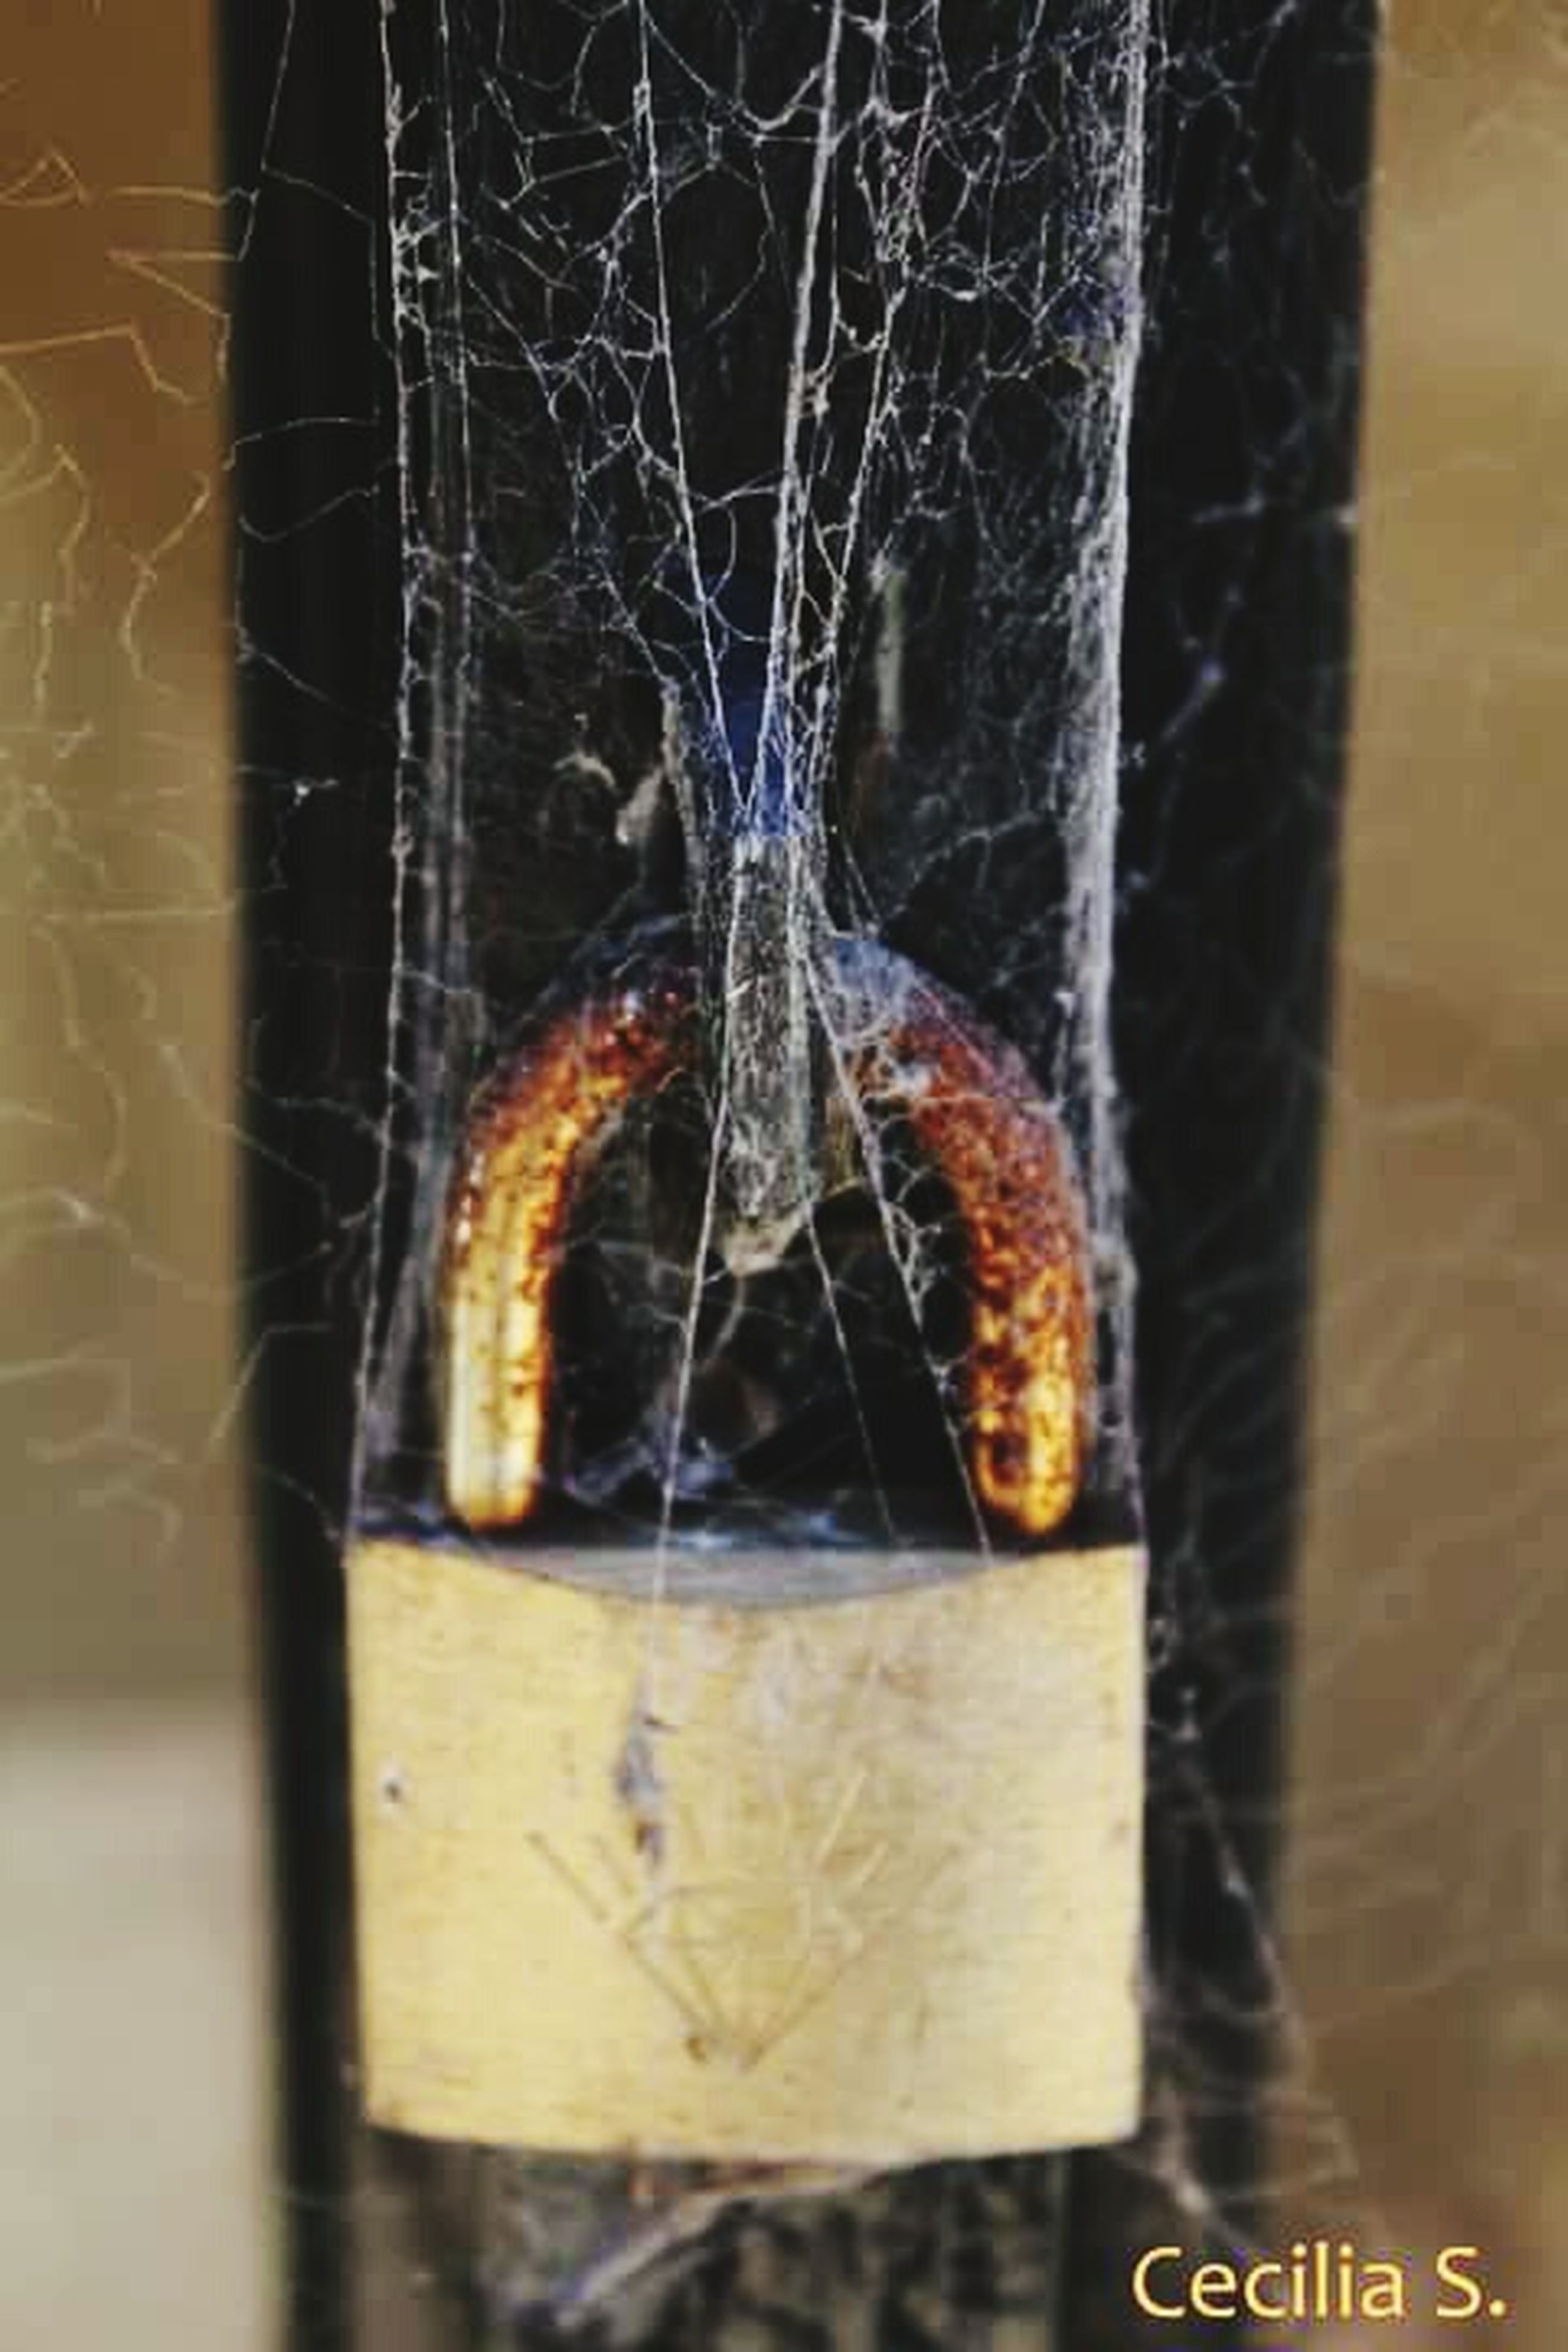 close-up, spider web, focus on foreground, complexity, night, no people, outdoors, window, fence, metal, pattern, danger, wood - material, hanging, full frame, rusty, damaged, backgrounds